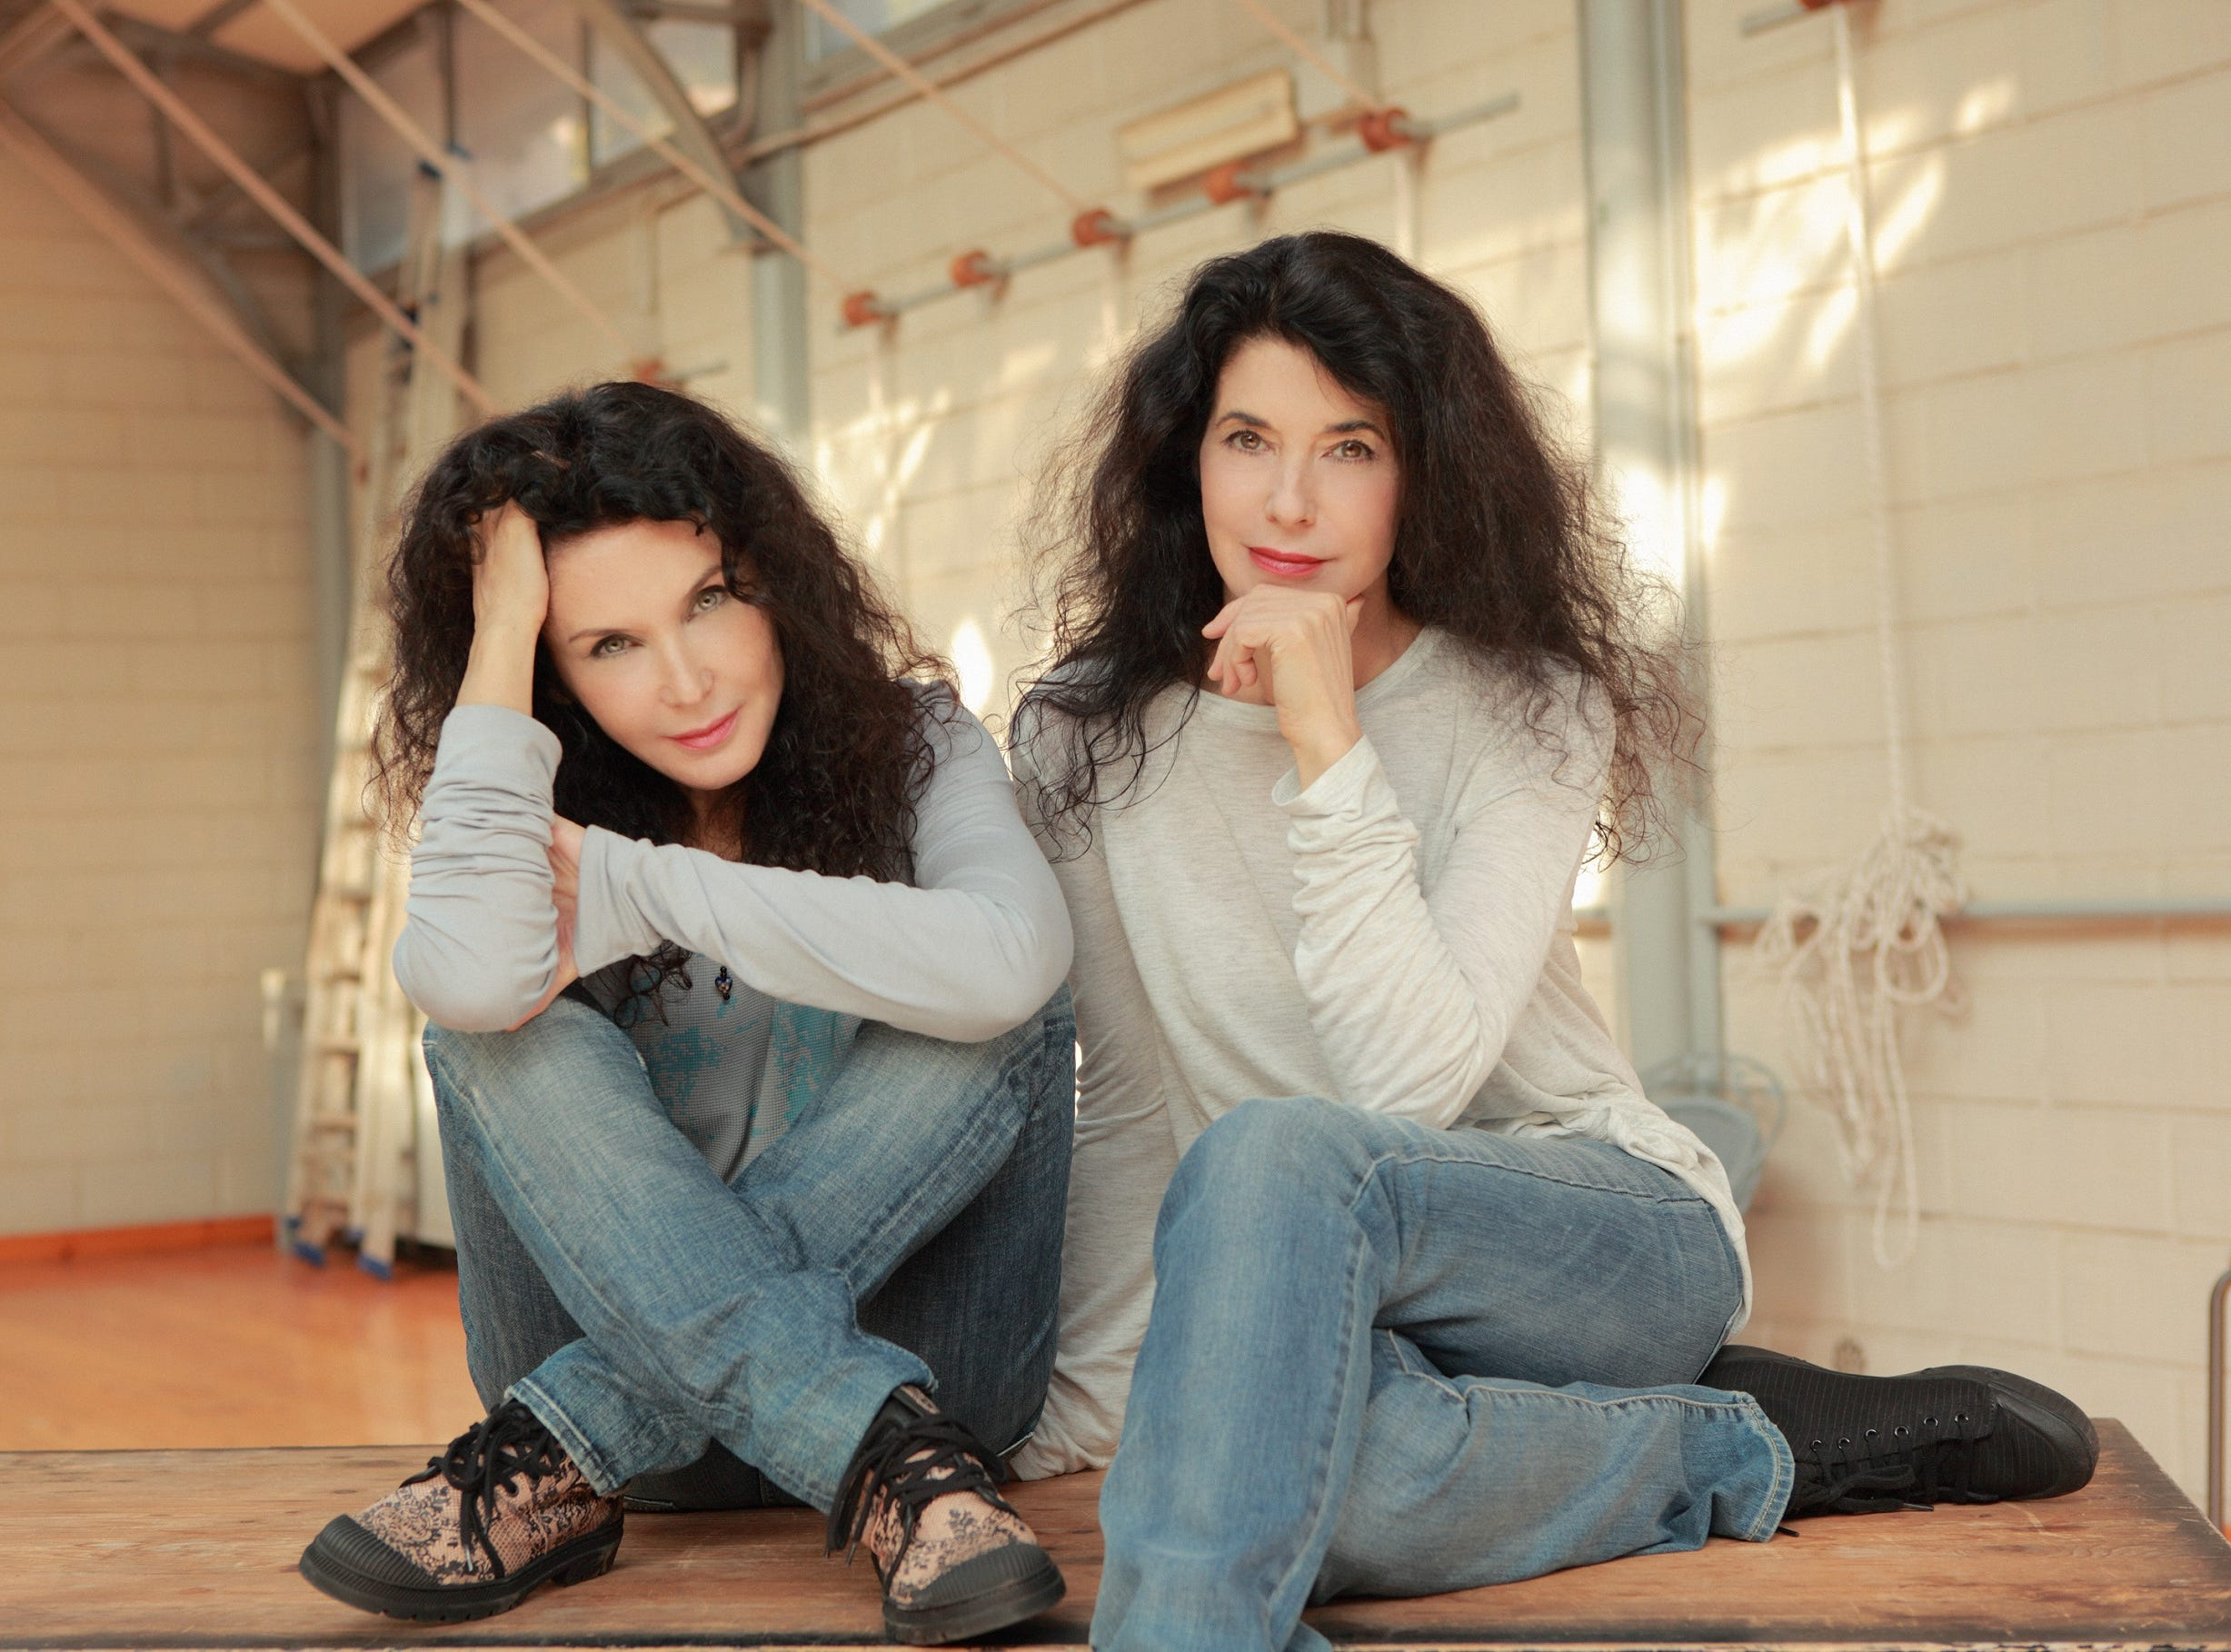 """Sisters Katia and Marielle Lebèque have been major presences on the global concert stage since the late 1960s. They will appear as part of the CSO's season-opening concerts on Sept. 20-21, performing the U.S. premiere of Cincinnati native Bryce Dessner's """"Concerto for Two Pianos."""""""